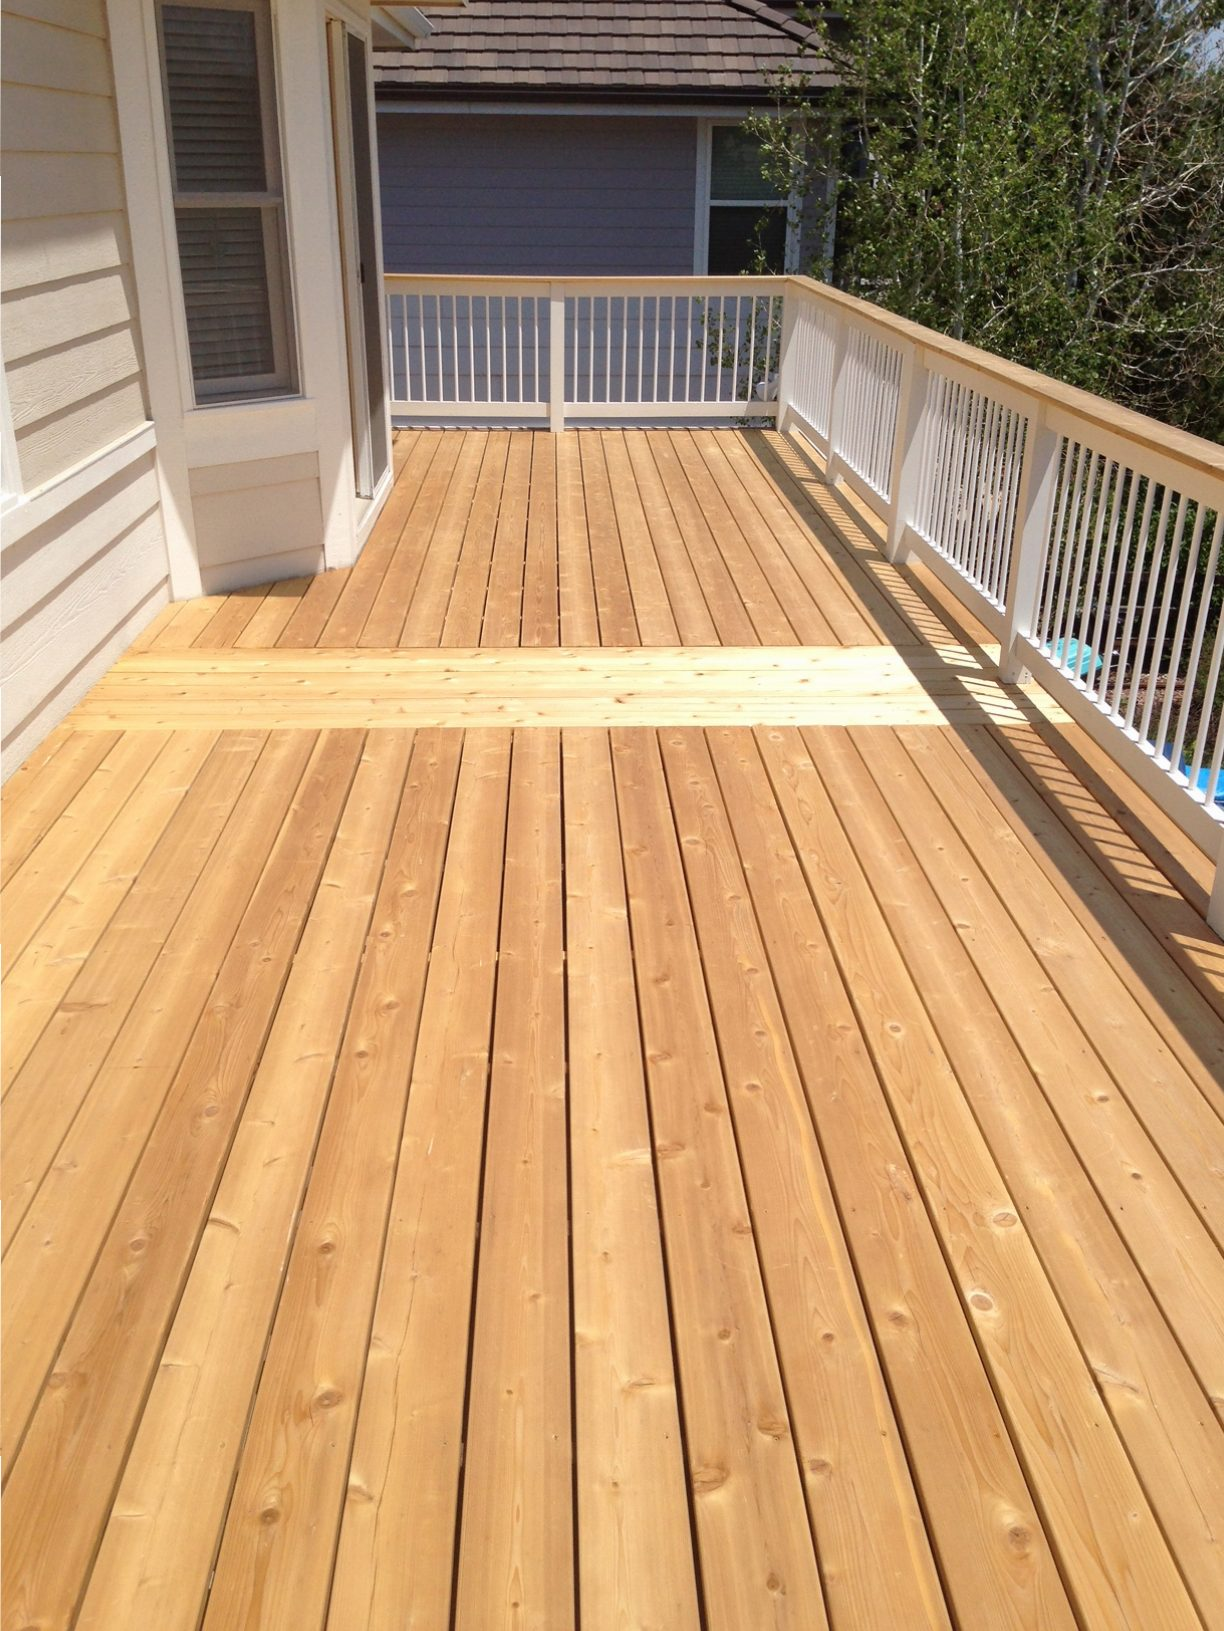 Deck Refinishing, Rebuilding, New